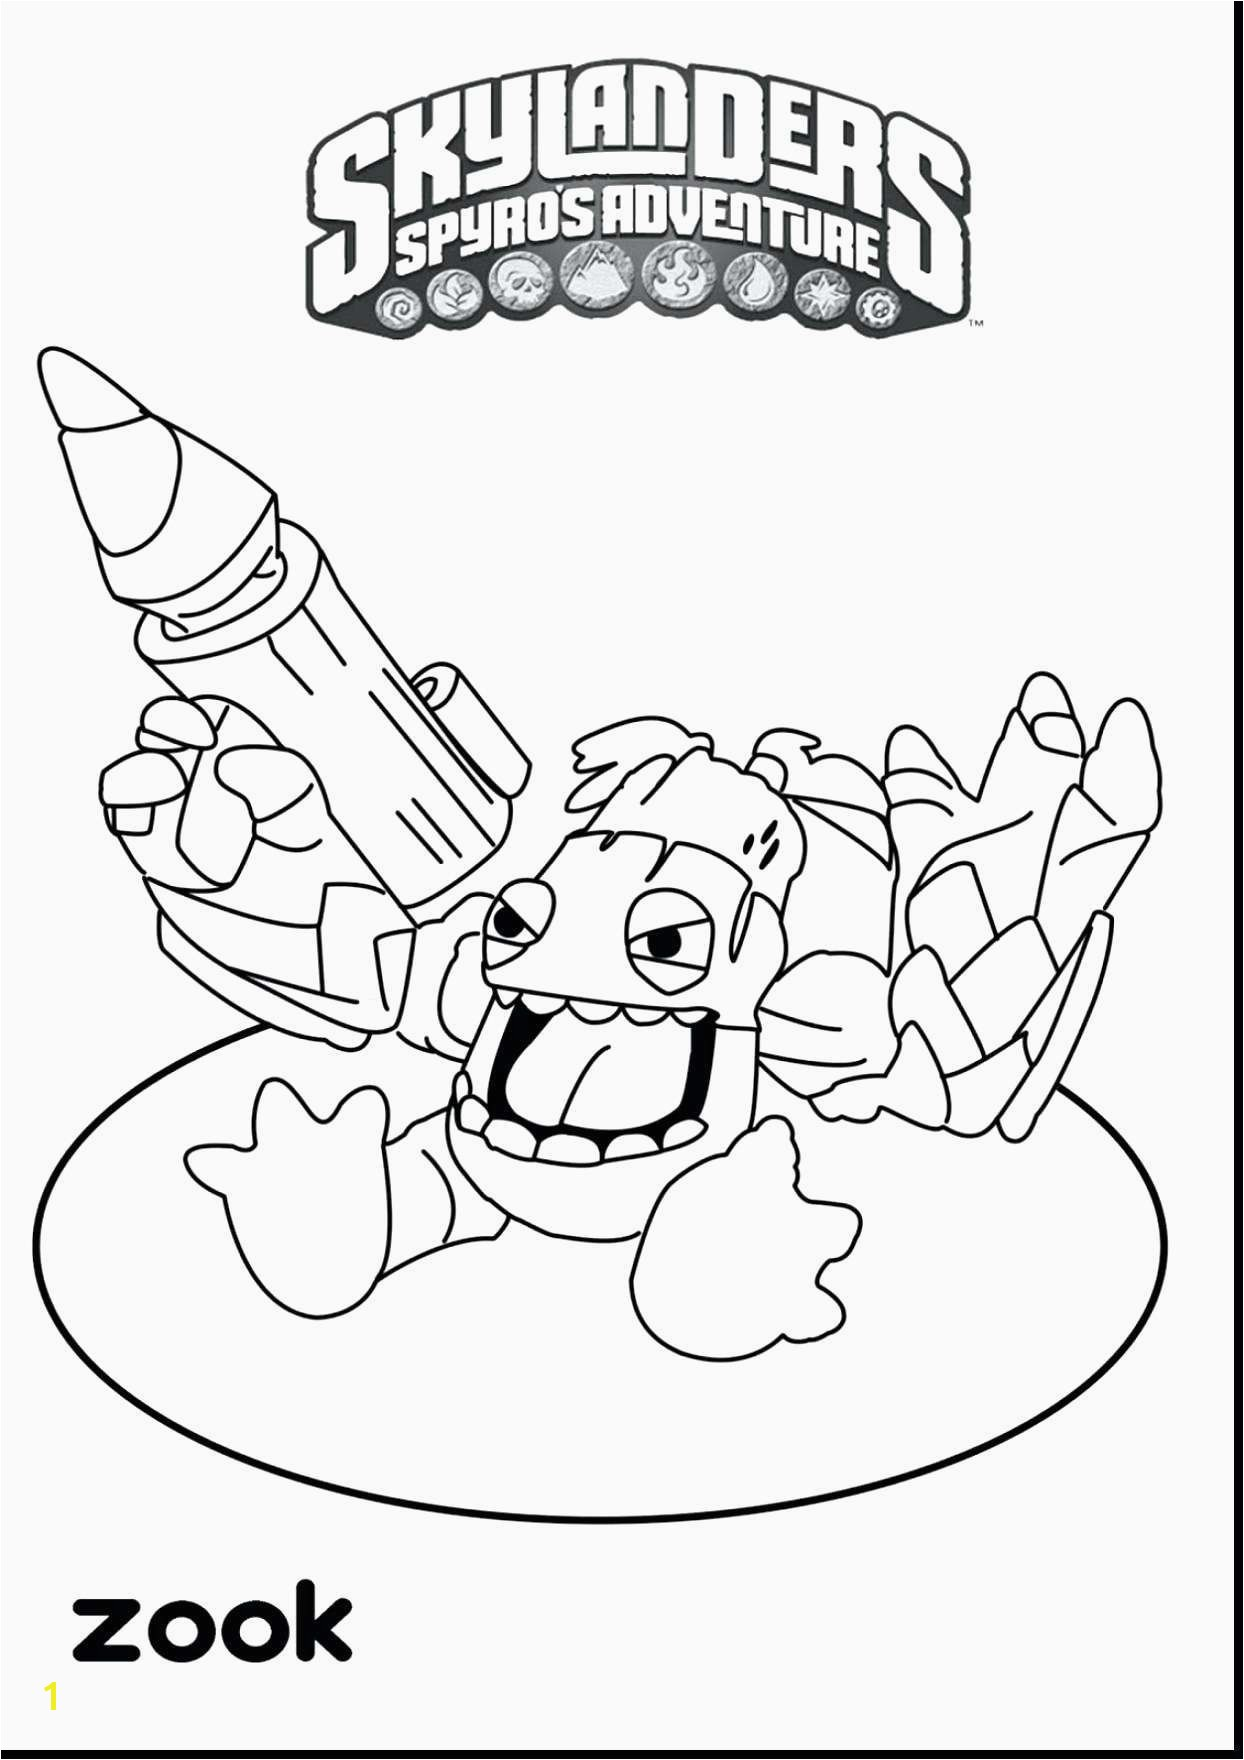 Free Precious Moments Coloring Pages 36 Free Coloring Pages for Girl Scouts Free